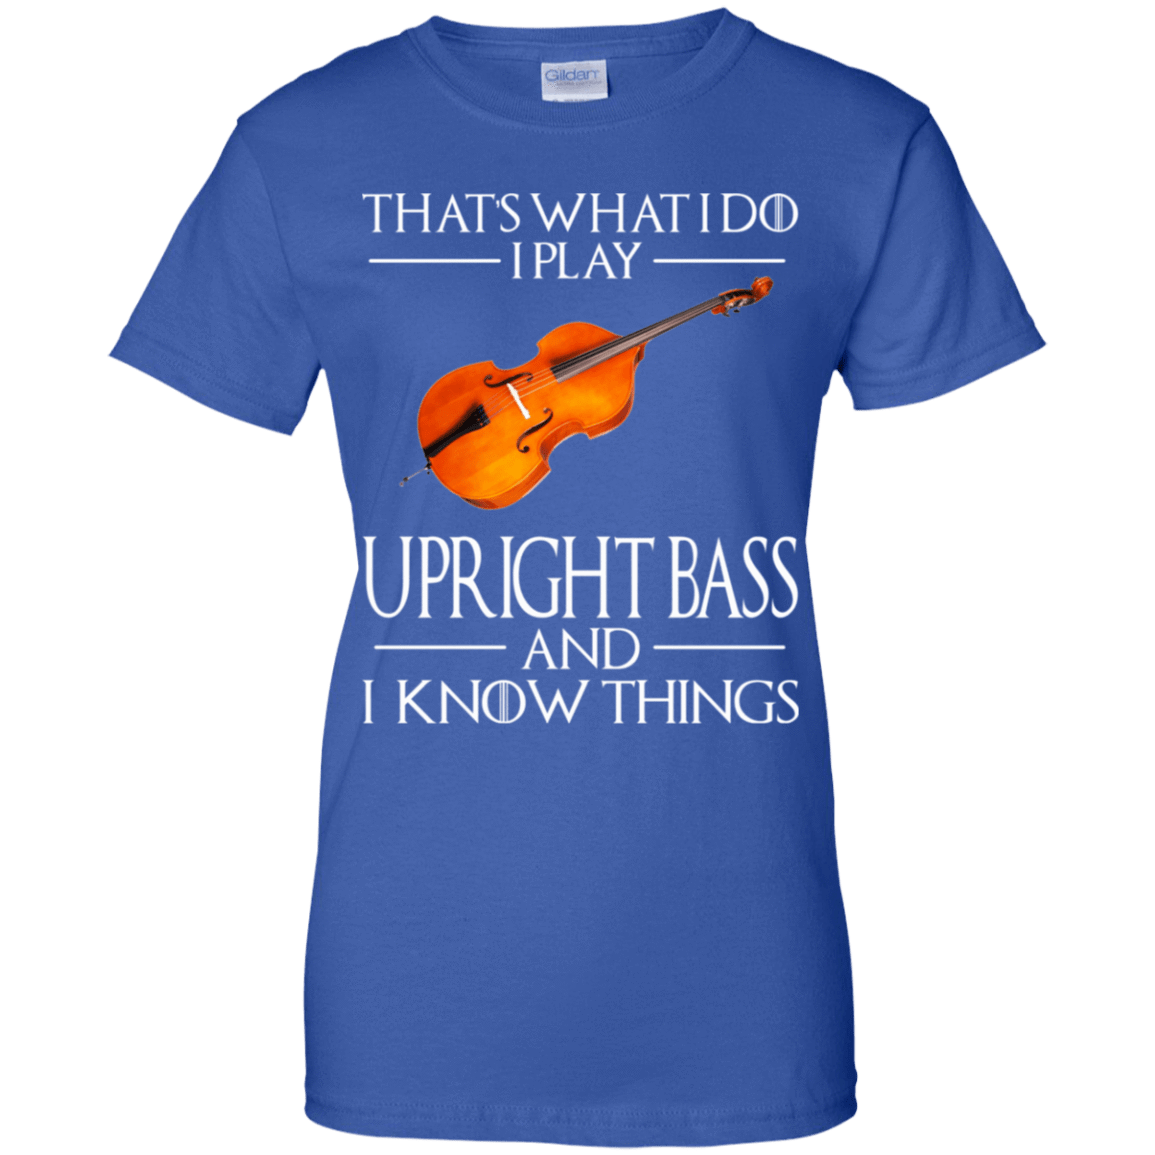 That's What I Do I Play Upright Bass And I Know Things 939-9264-73427950-44807 - Tee Ript